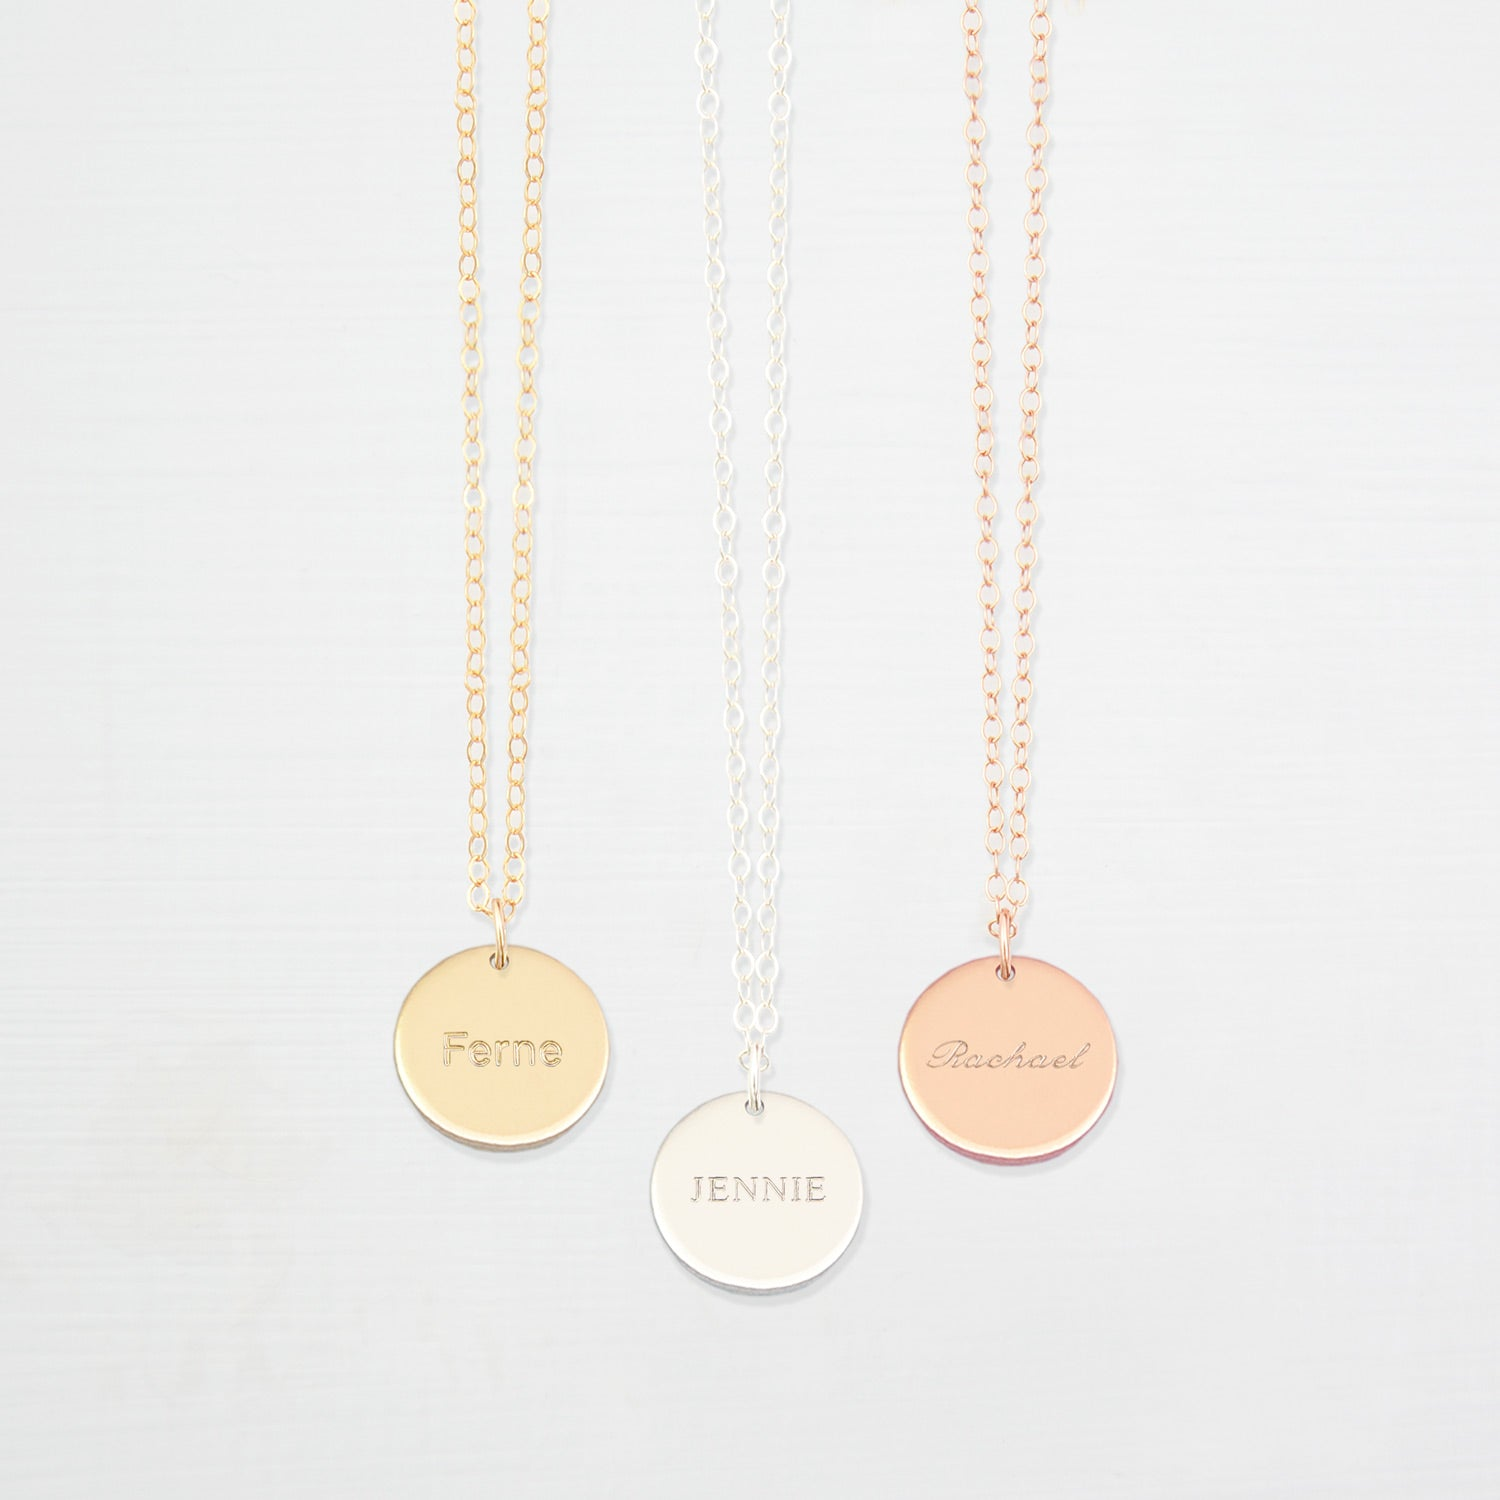 Personalised medium disk 'name' necklace